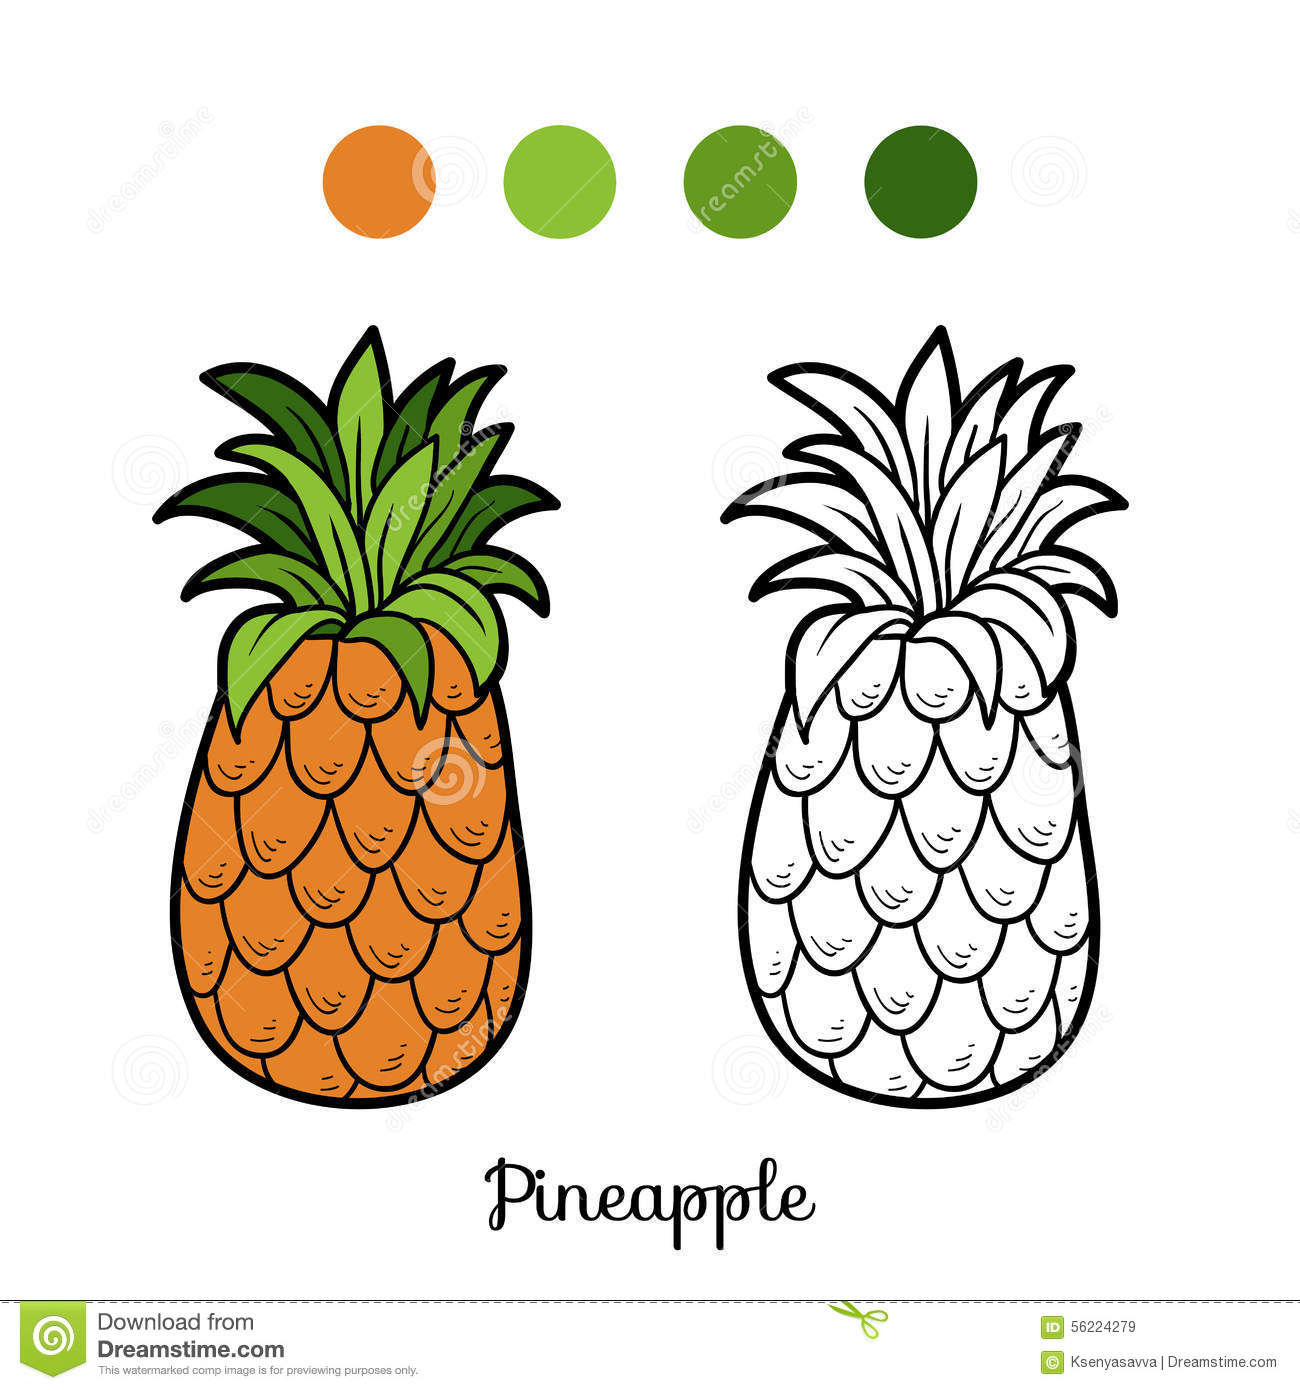 Coloring book pictures of vegetables - Coloring Book Fruits And Vegetables Pineapple